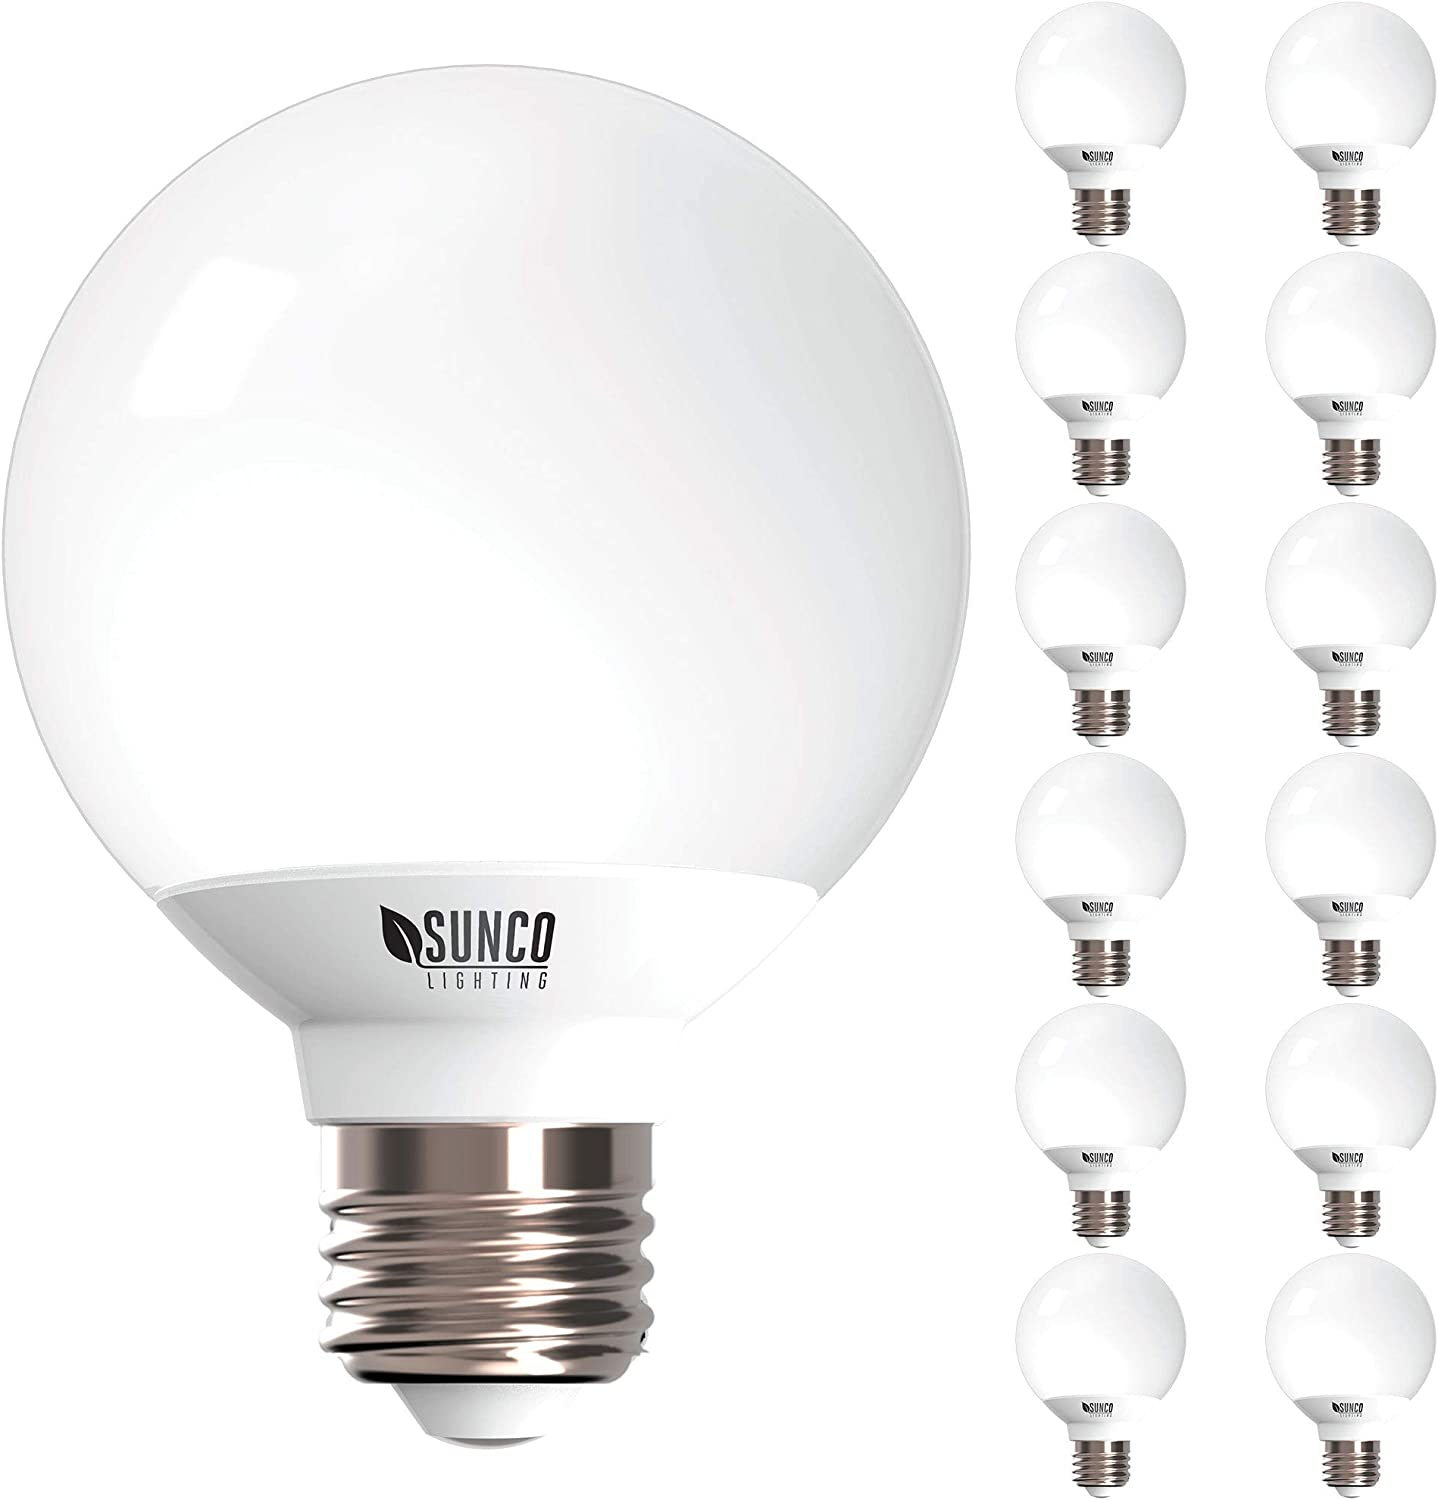 Sunco Lighting 12 Pack G25 LED Globe, 6W=40W, Dimmable, 450 LM, 2700K Soft White, E26 Base, Ideal for Bathroom Vanity or Mirror - UL & Energy Star